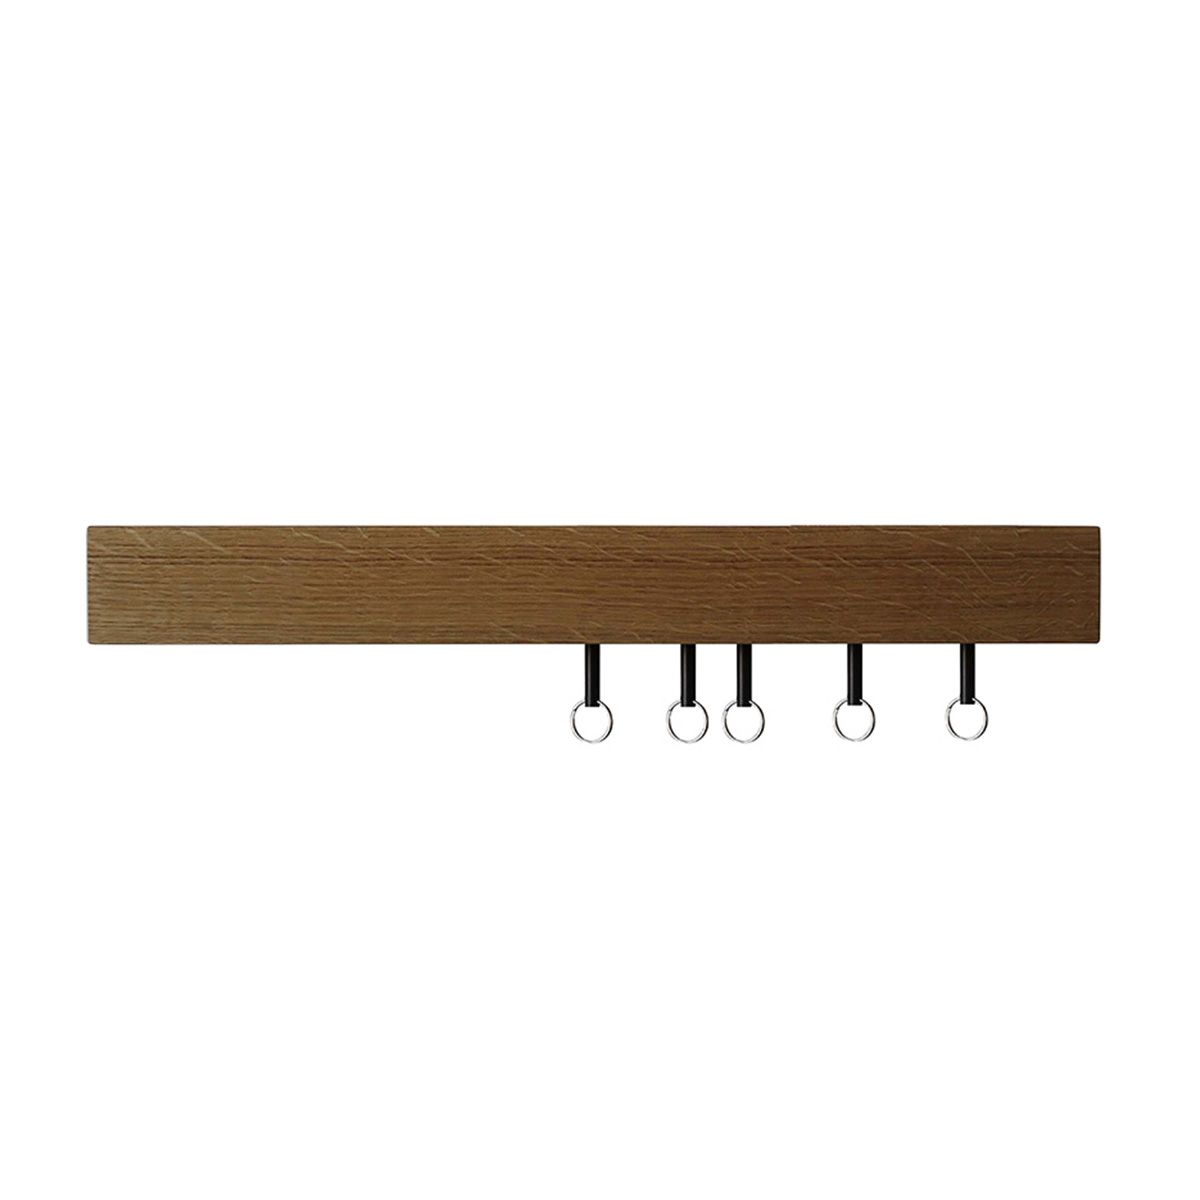 portachiavi-muro-design-wall-key-mail-holder-designobject-big-dark-wood